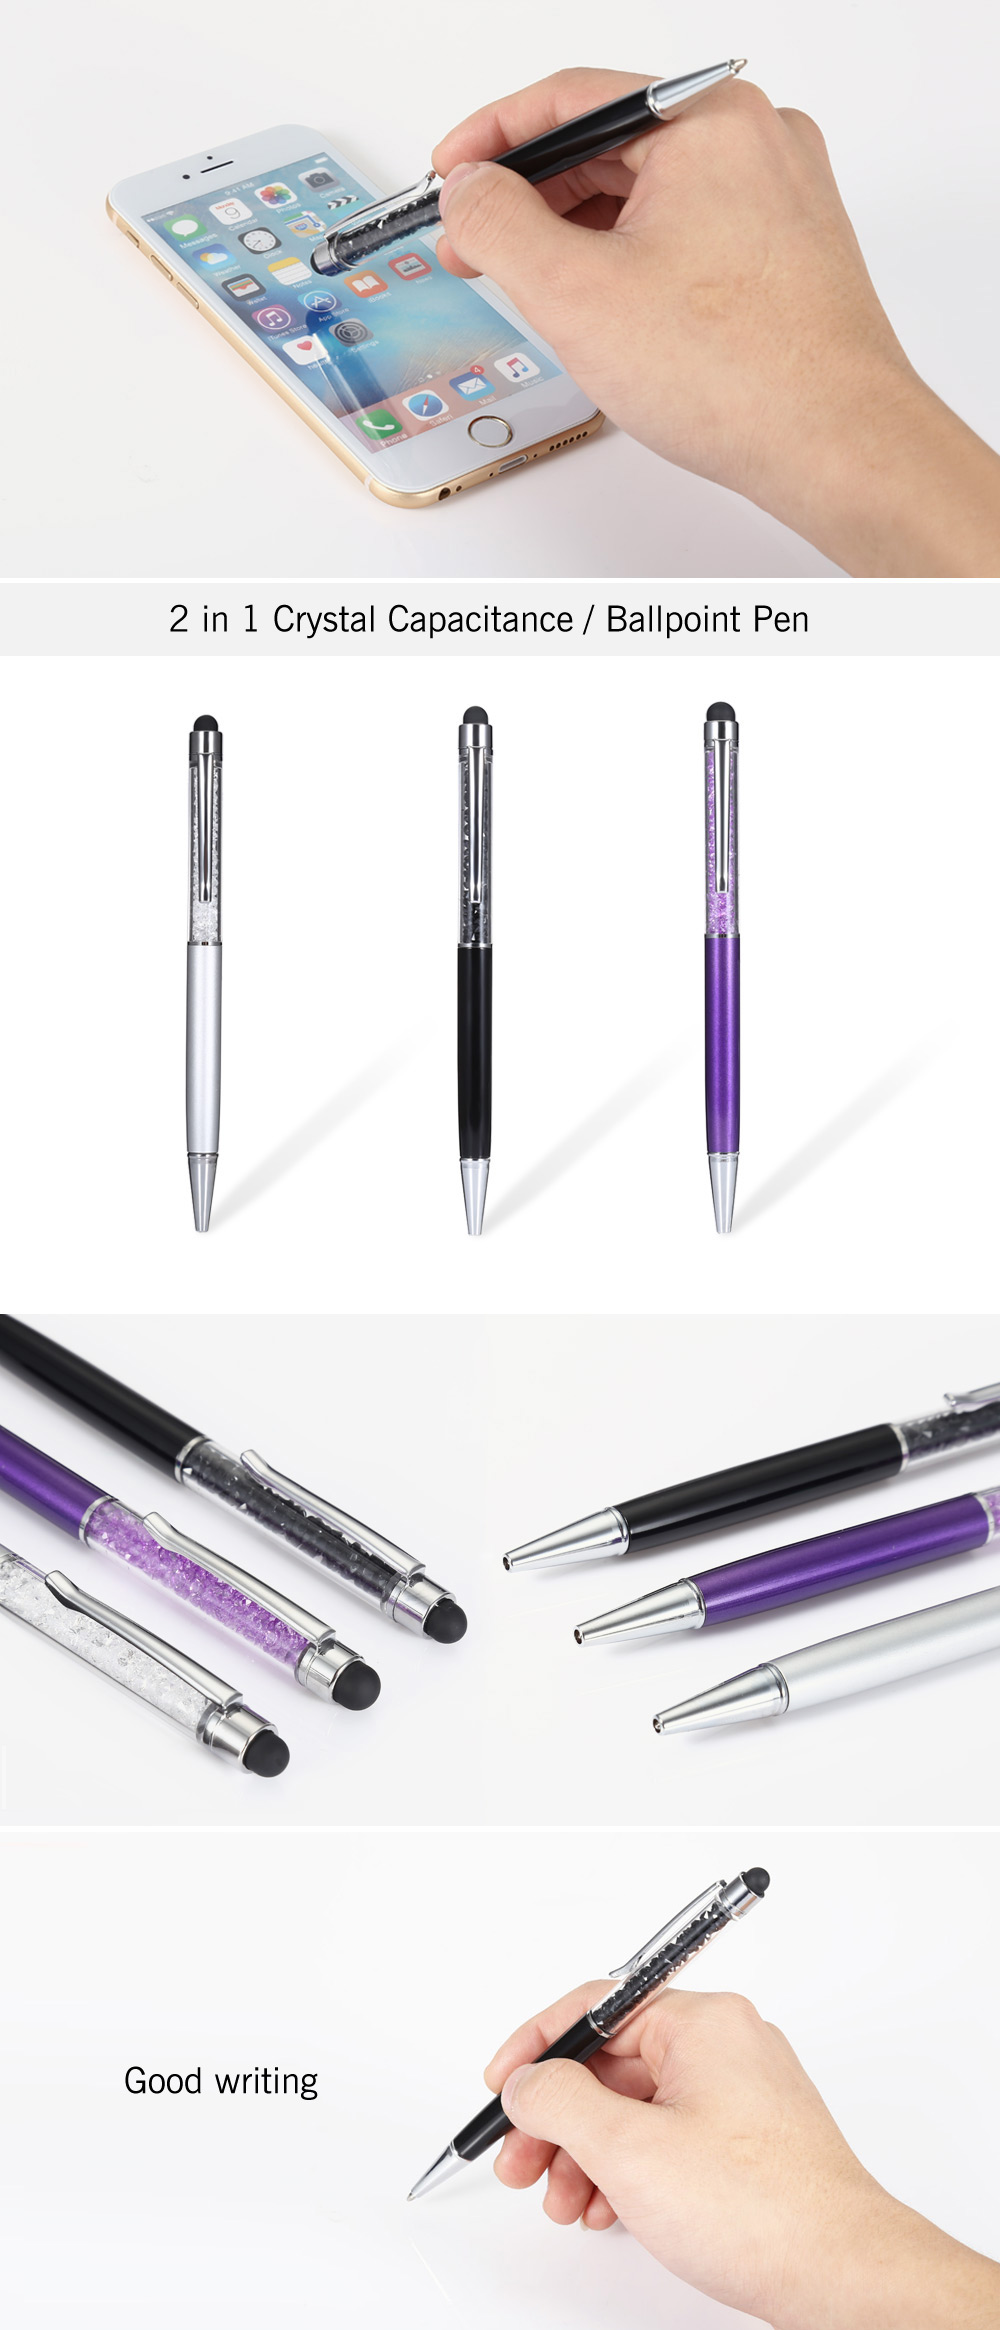 2 in 1 Crystal Capacitive Stylus / Touch Pen with Ballpoint